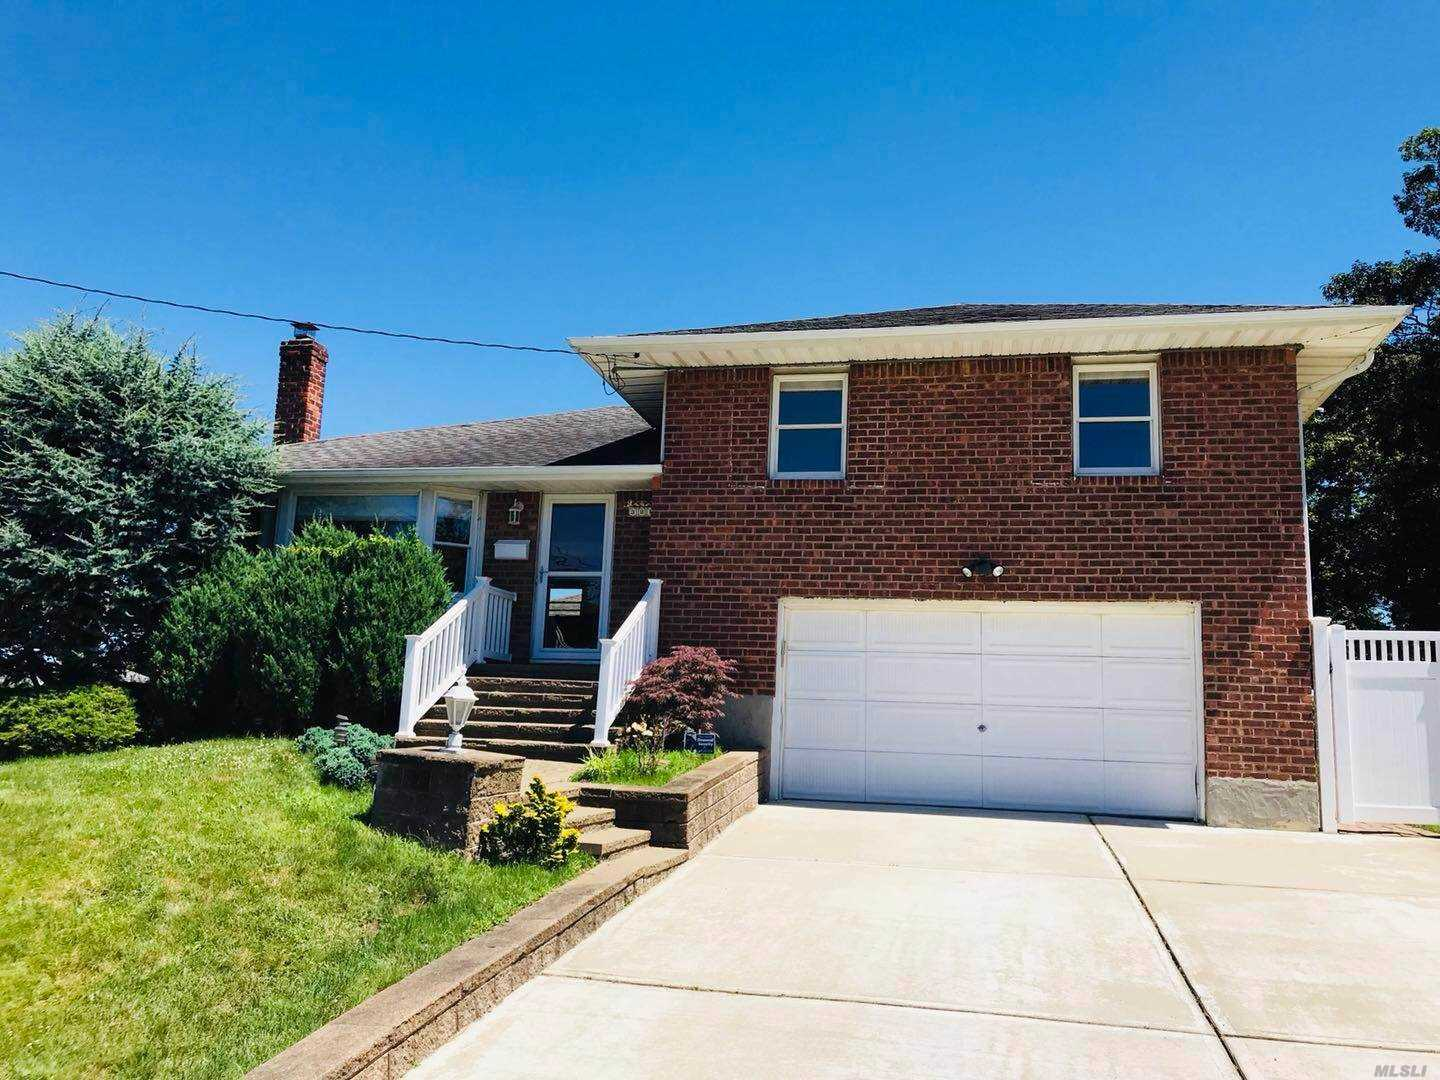 Well Maintained Split Level 4 Bedrooms 2 Bathrooms House In Jericho. Hard Wood Floors, Updated Kitchen, In-Ground Sprinklers For Garden Etc, Syosset Schools. Closed To All.